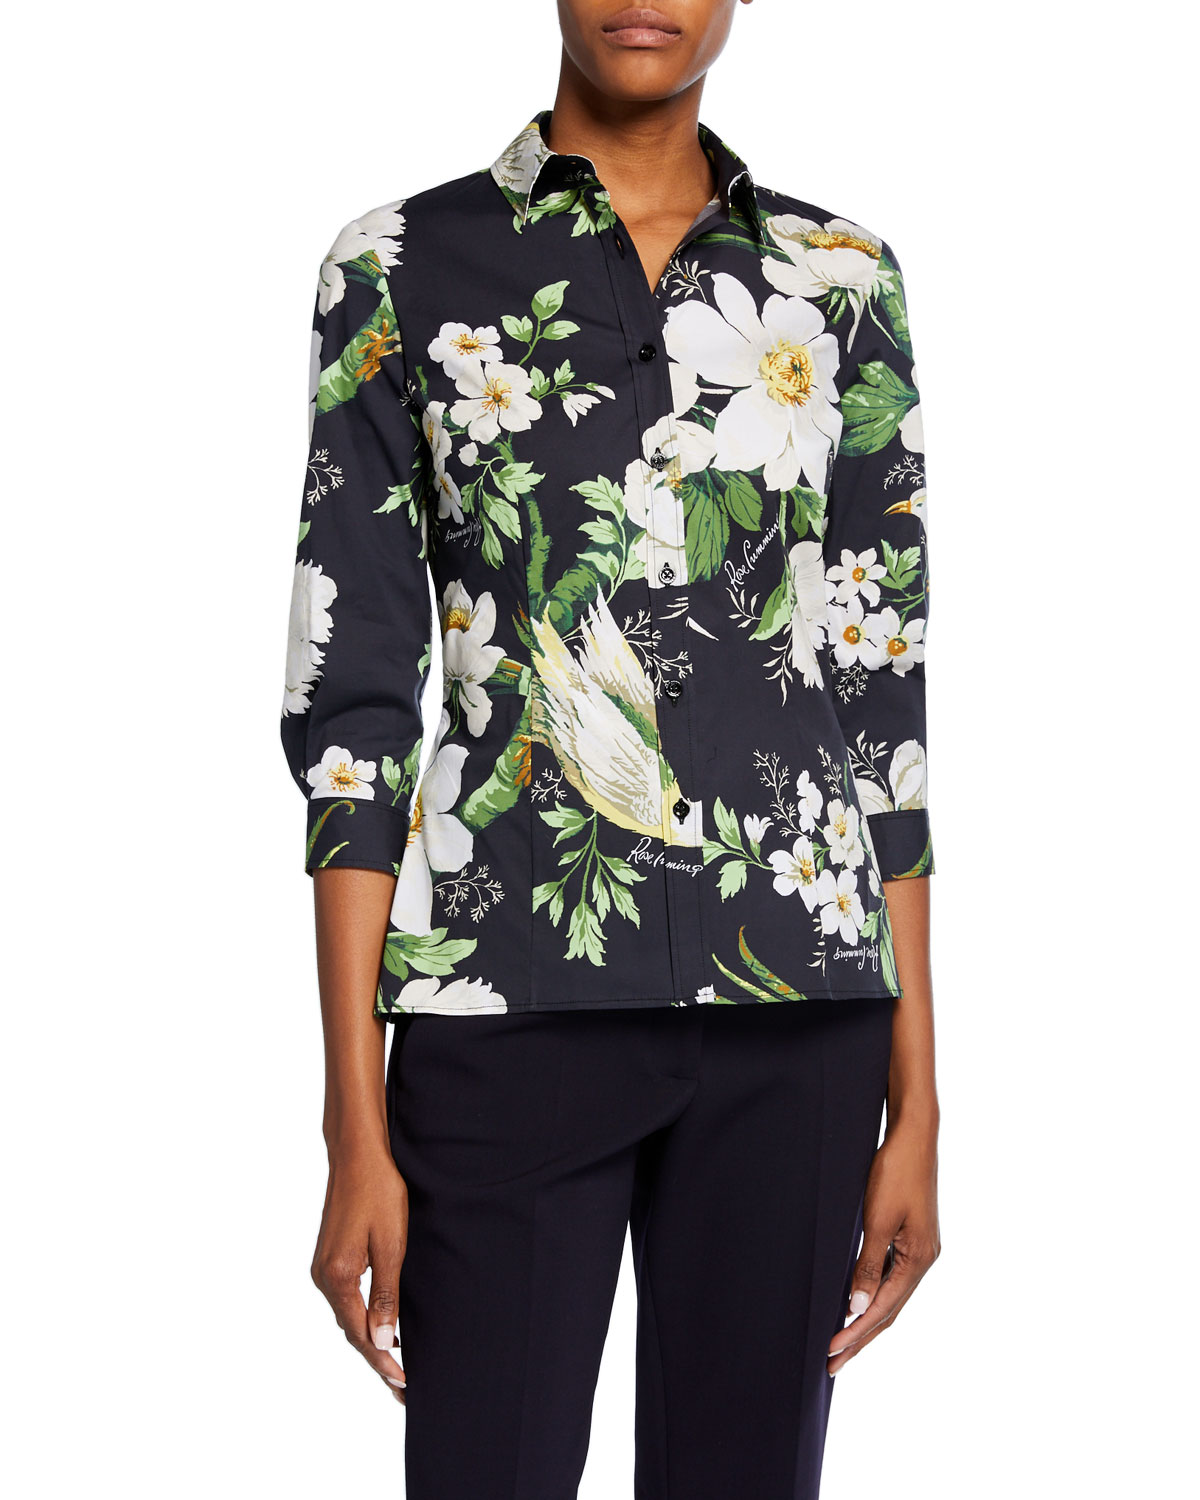 Carolina Herrera T-shirts MIDNIGHT FLORAL-PRINT 3/4-SLEEVE SHIRT